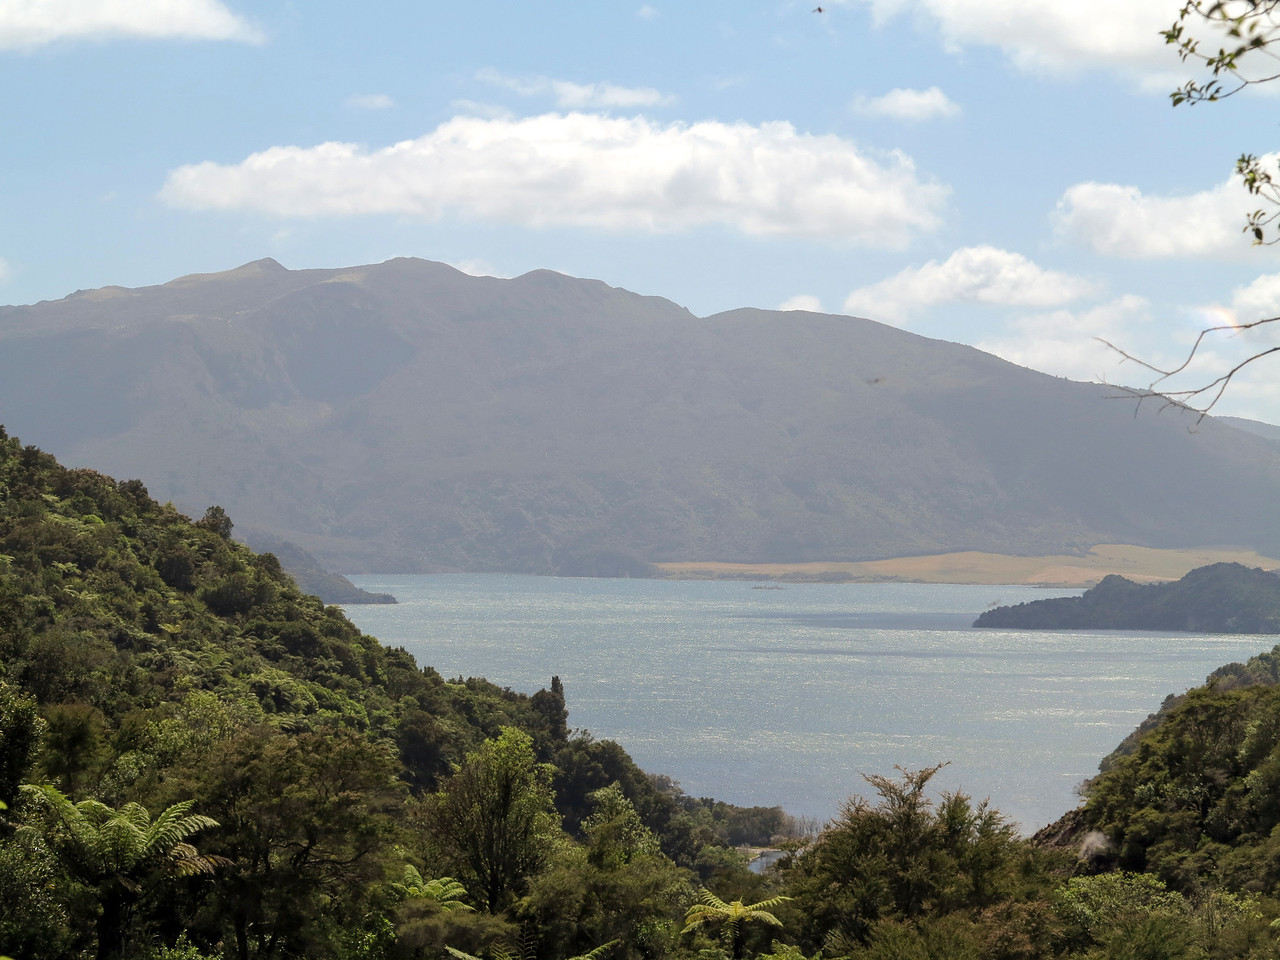 Mt Tarawera and Lake Rotomohana